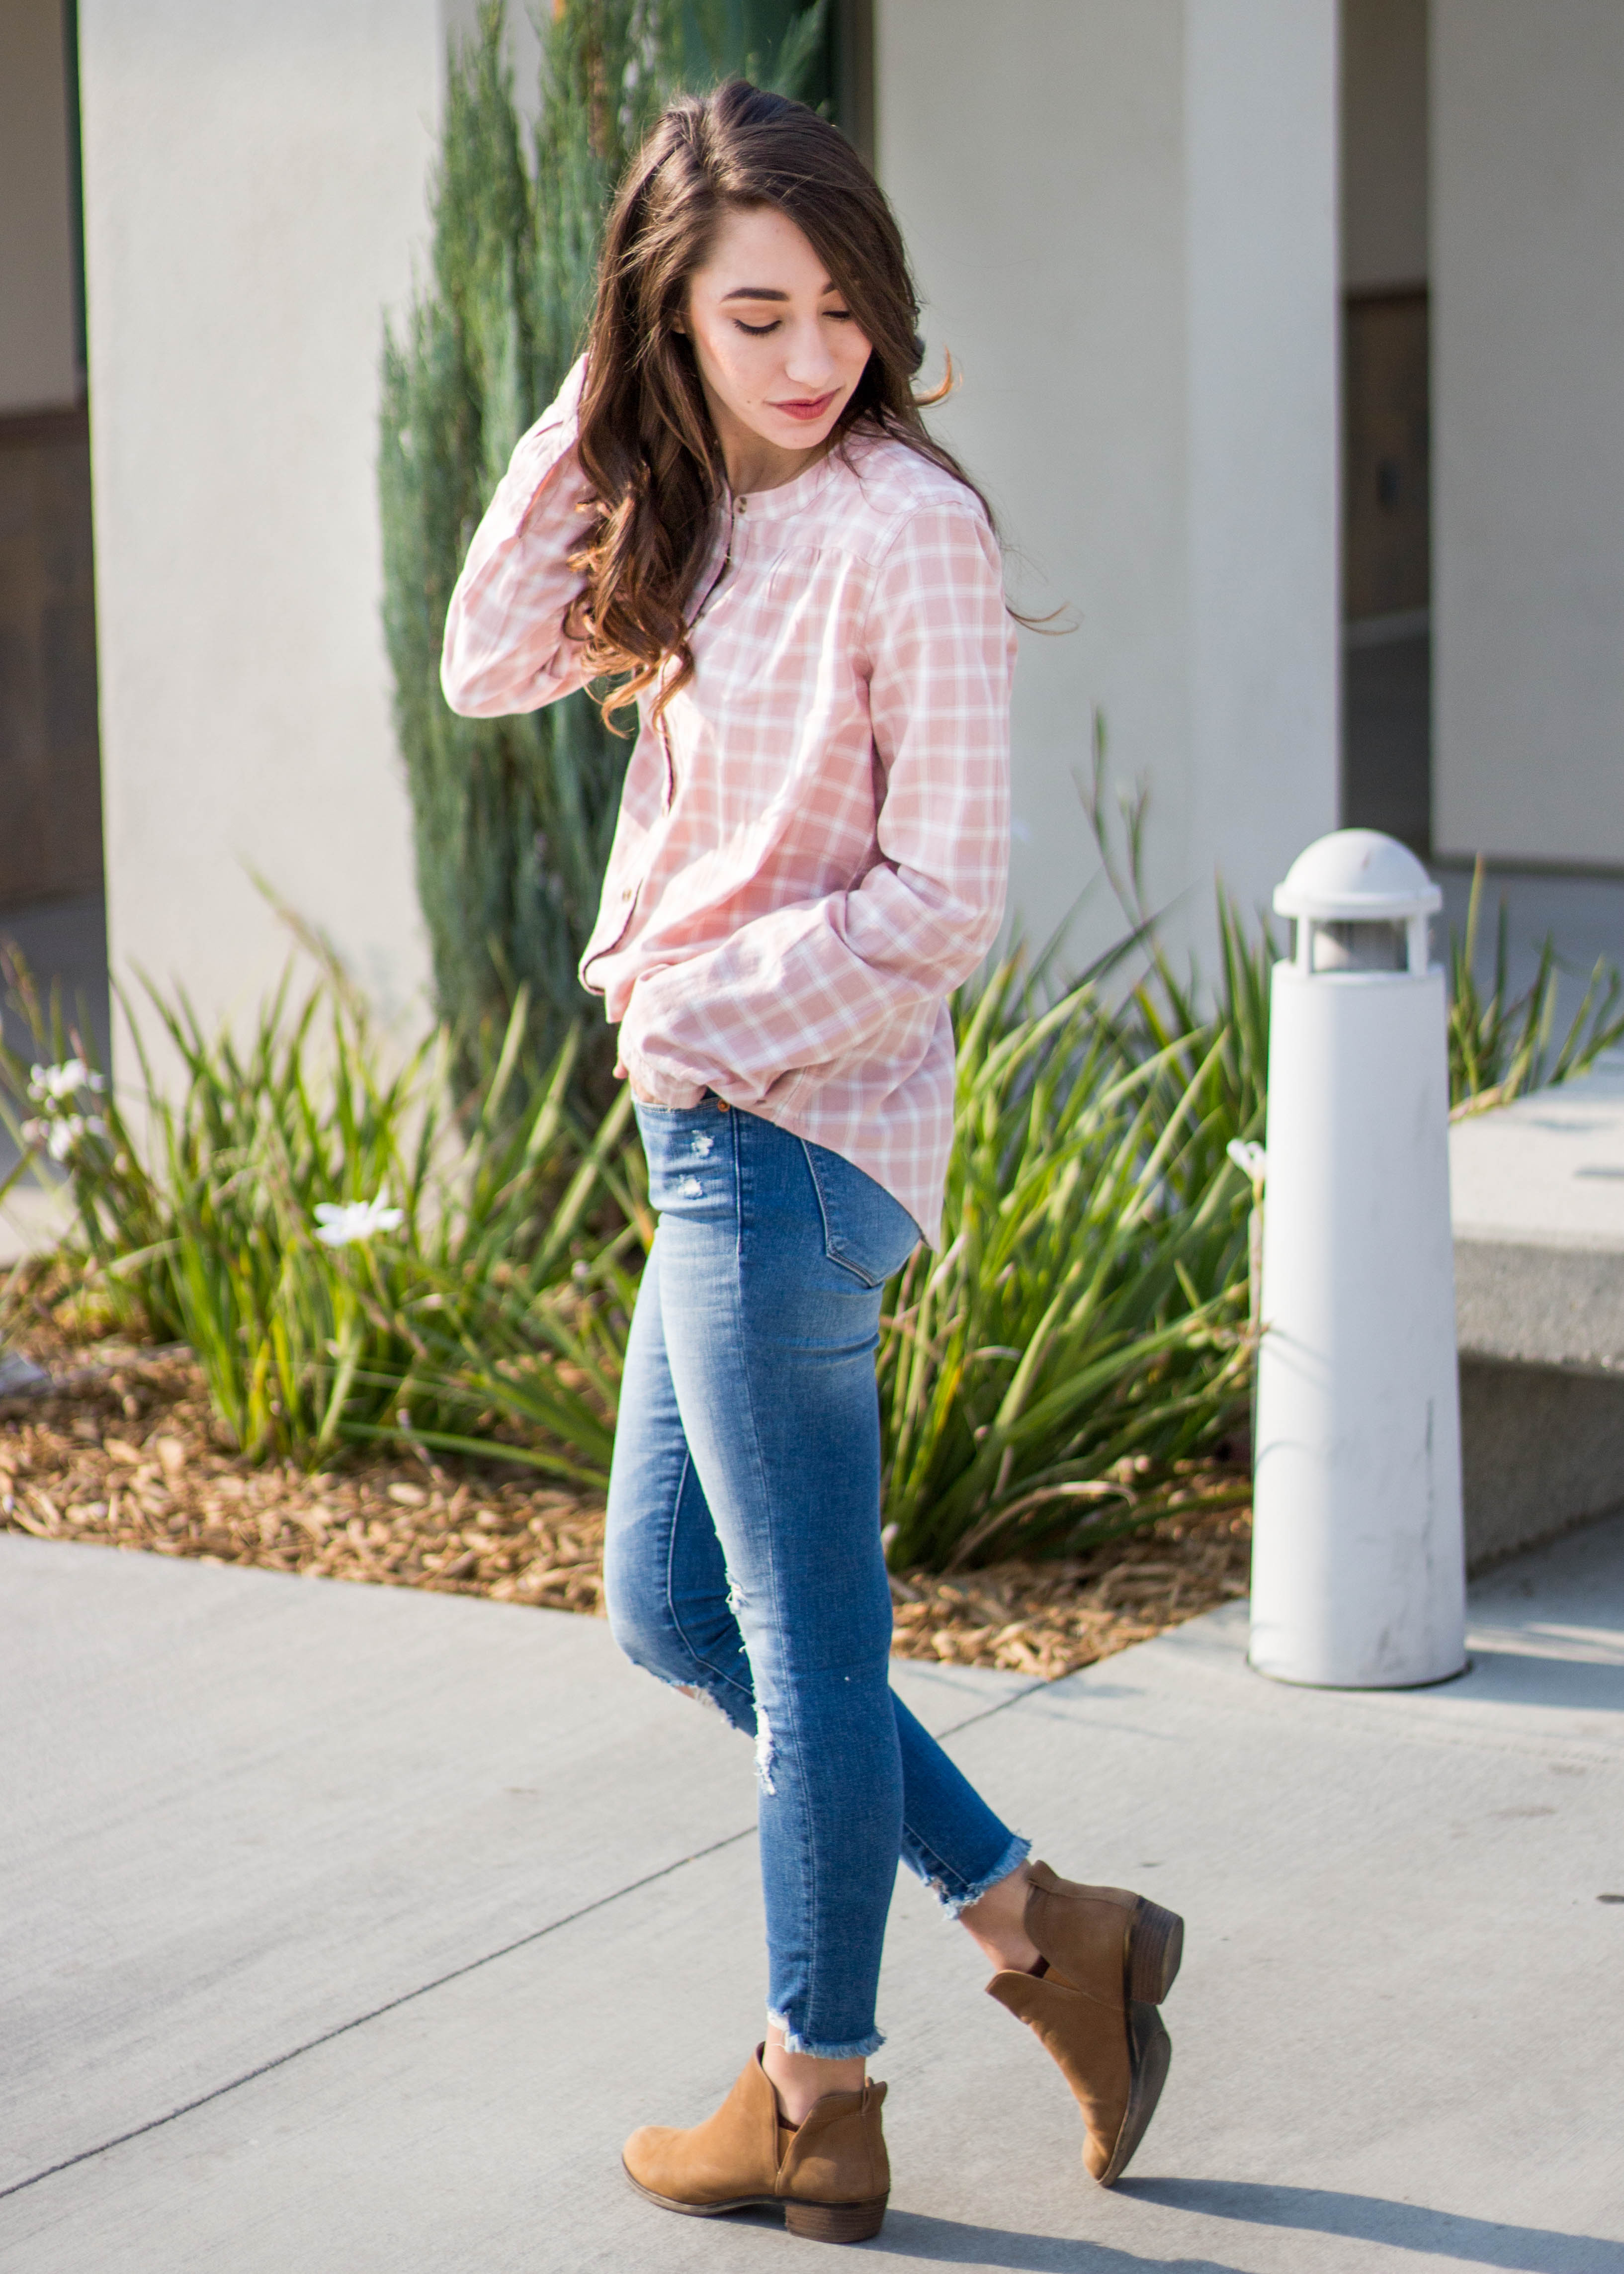 Abercrombie Flannel and Jeans